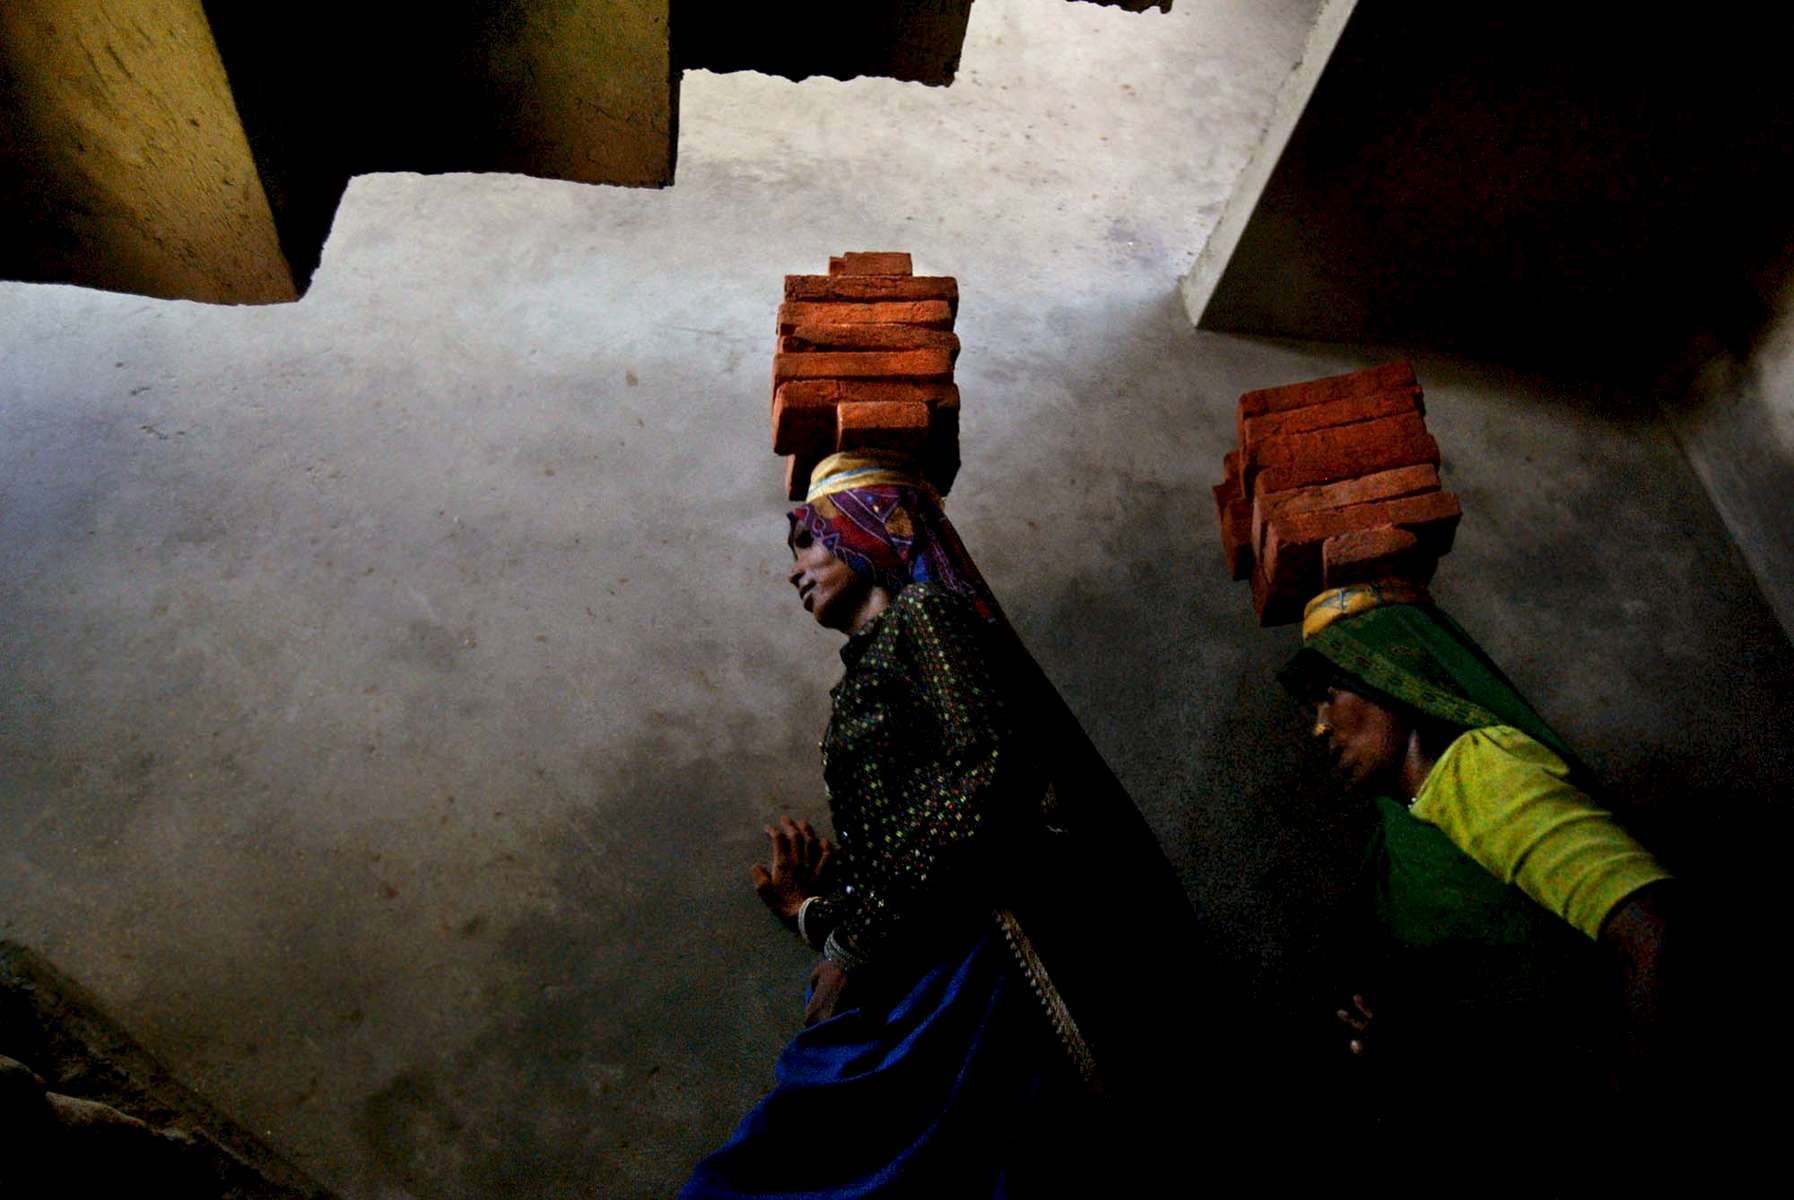 Rajasthani women carry bricks that will be used in construction in a house. Women commonly work as laborers in India.